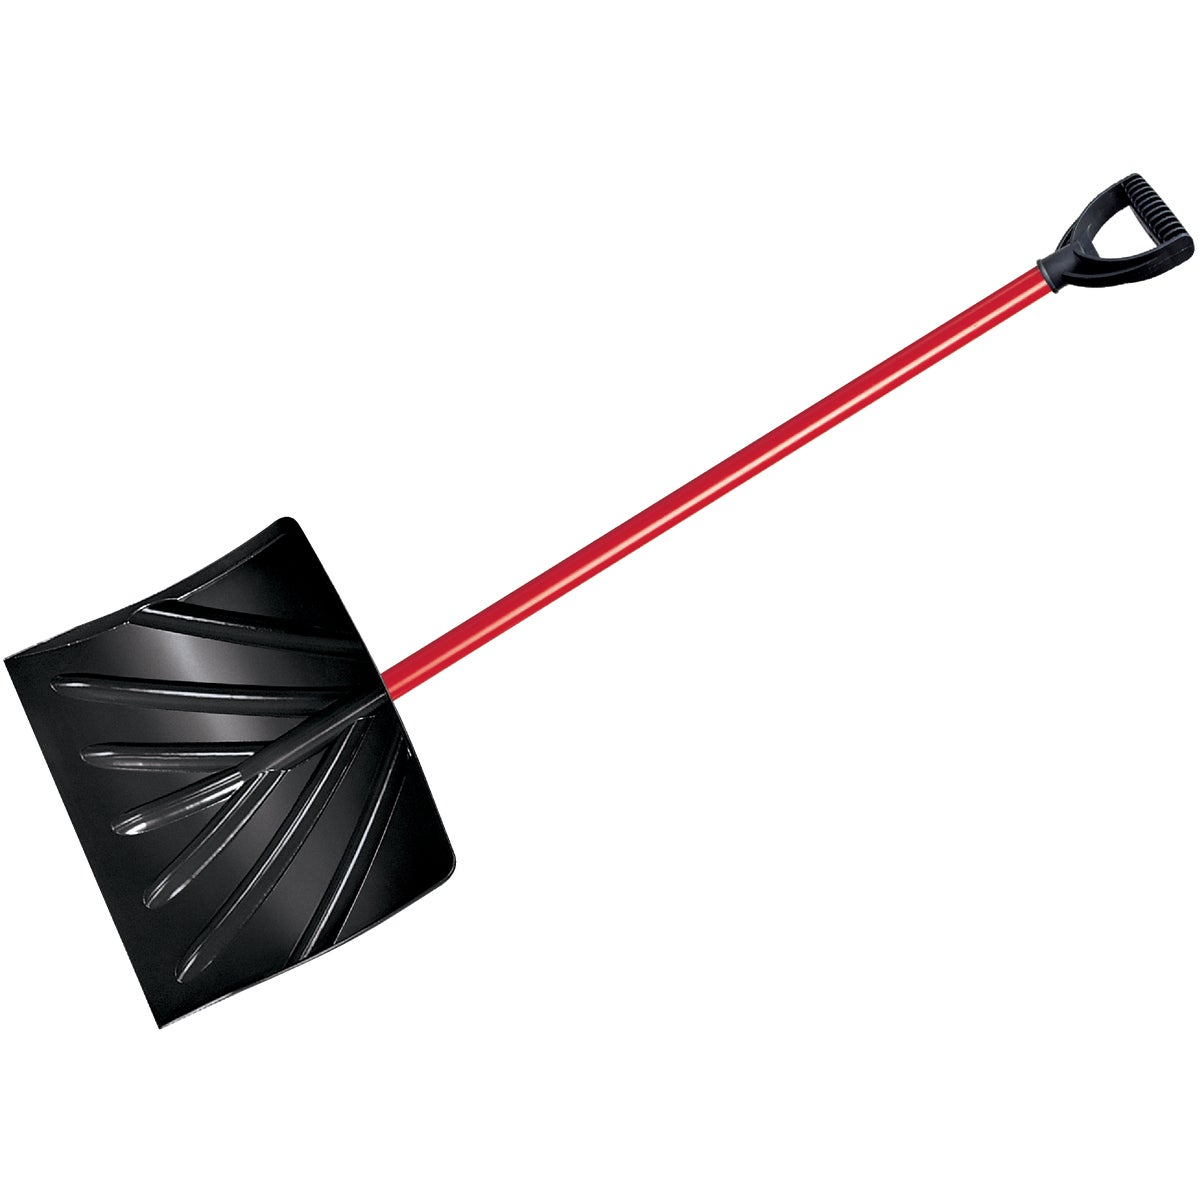 "18"" POLY SNOW SHOVEL - 1573700 by Ames True Temper"